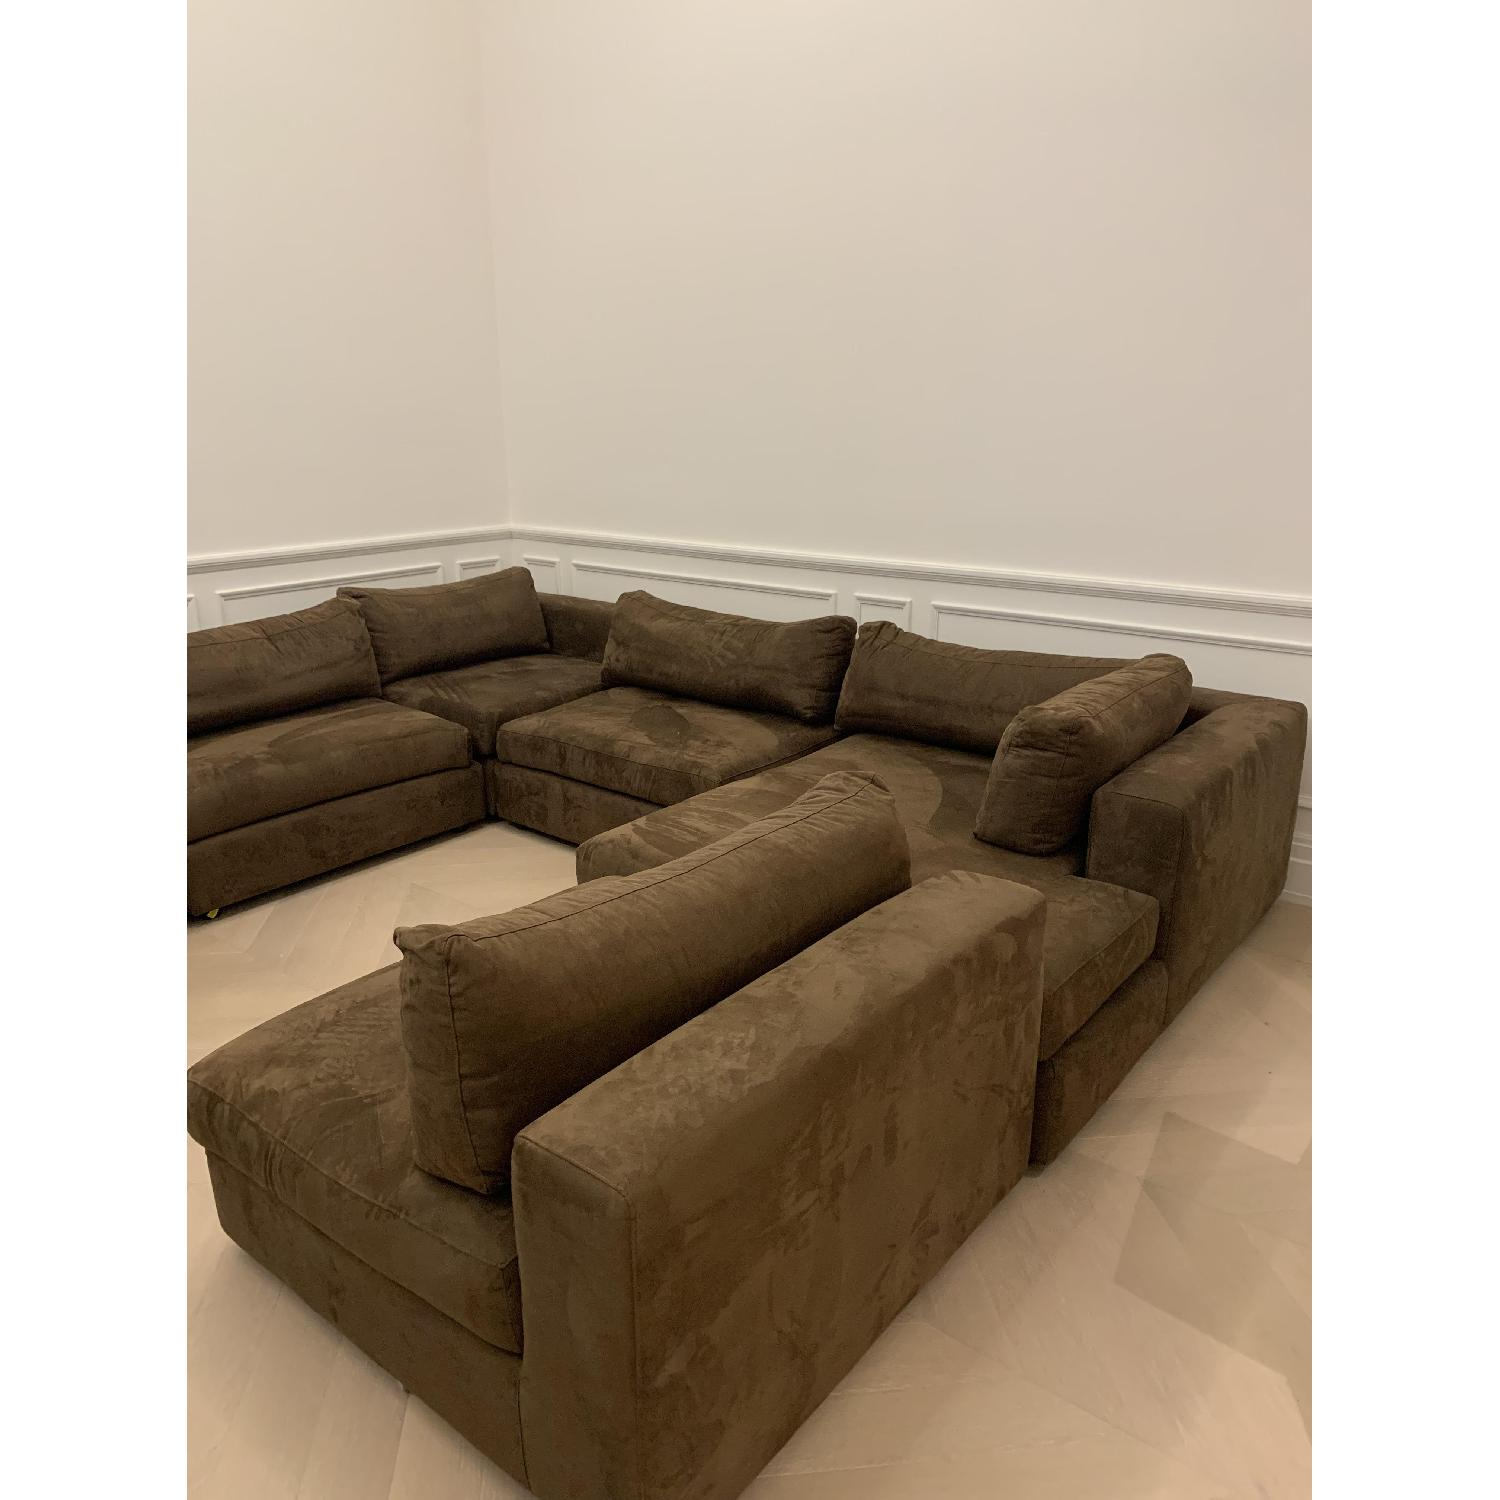 Taylor Made Brown Suede 6-Piece Sectional Sofa - image-11